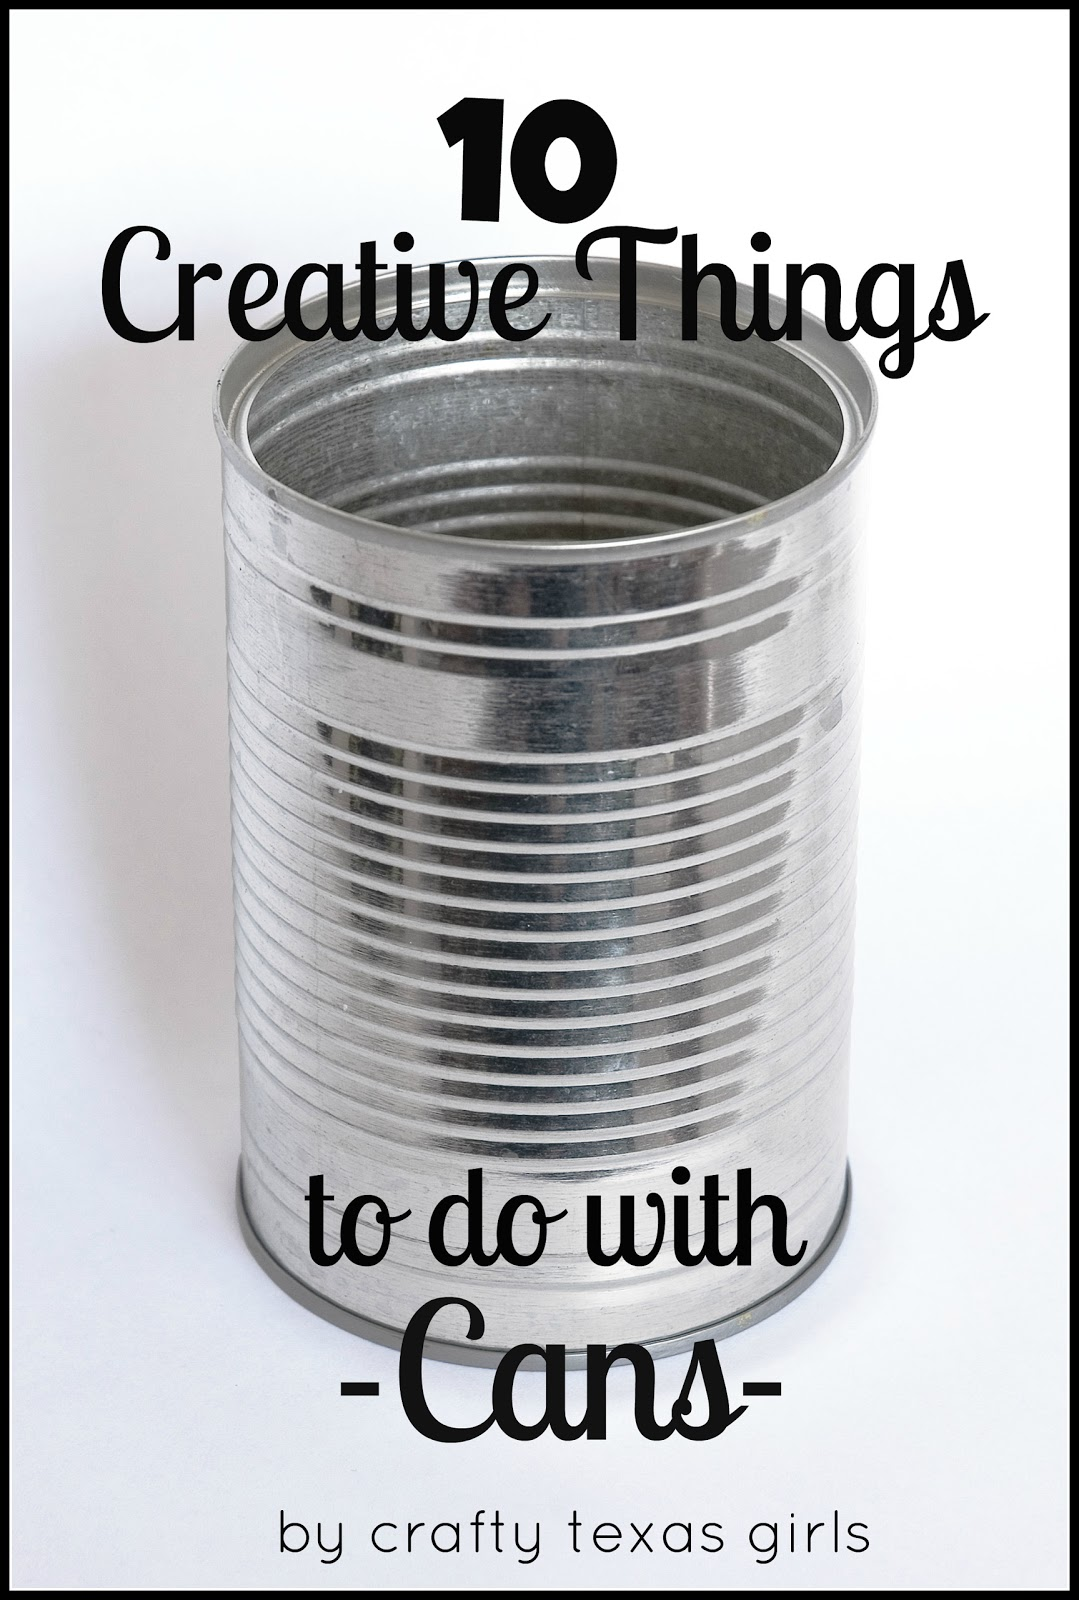 crafty texas girls 10 creative things to do with cans